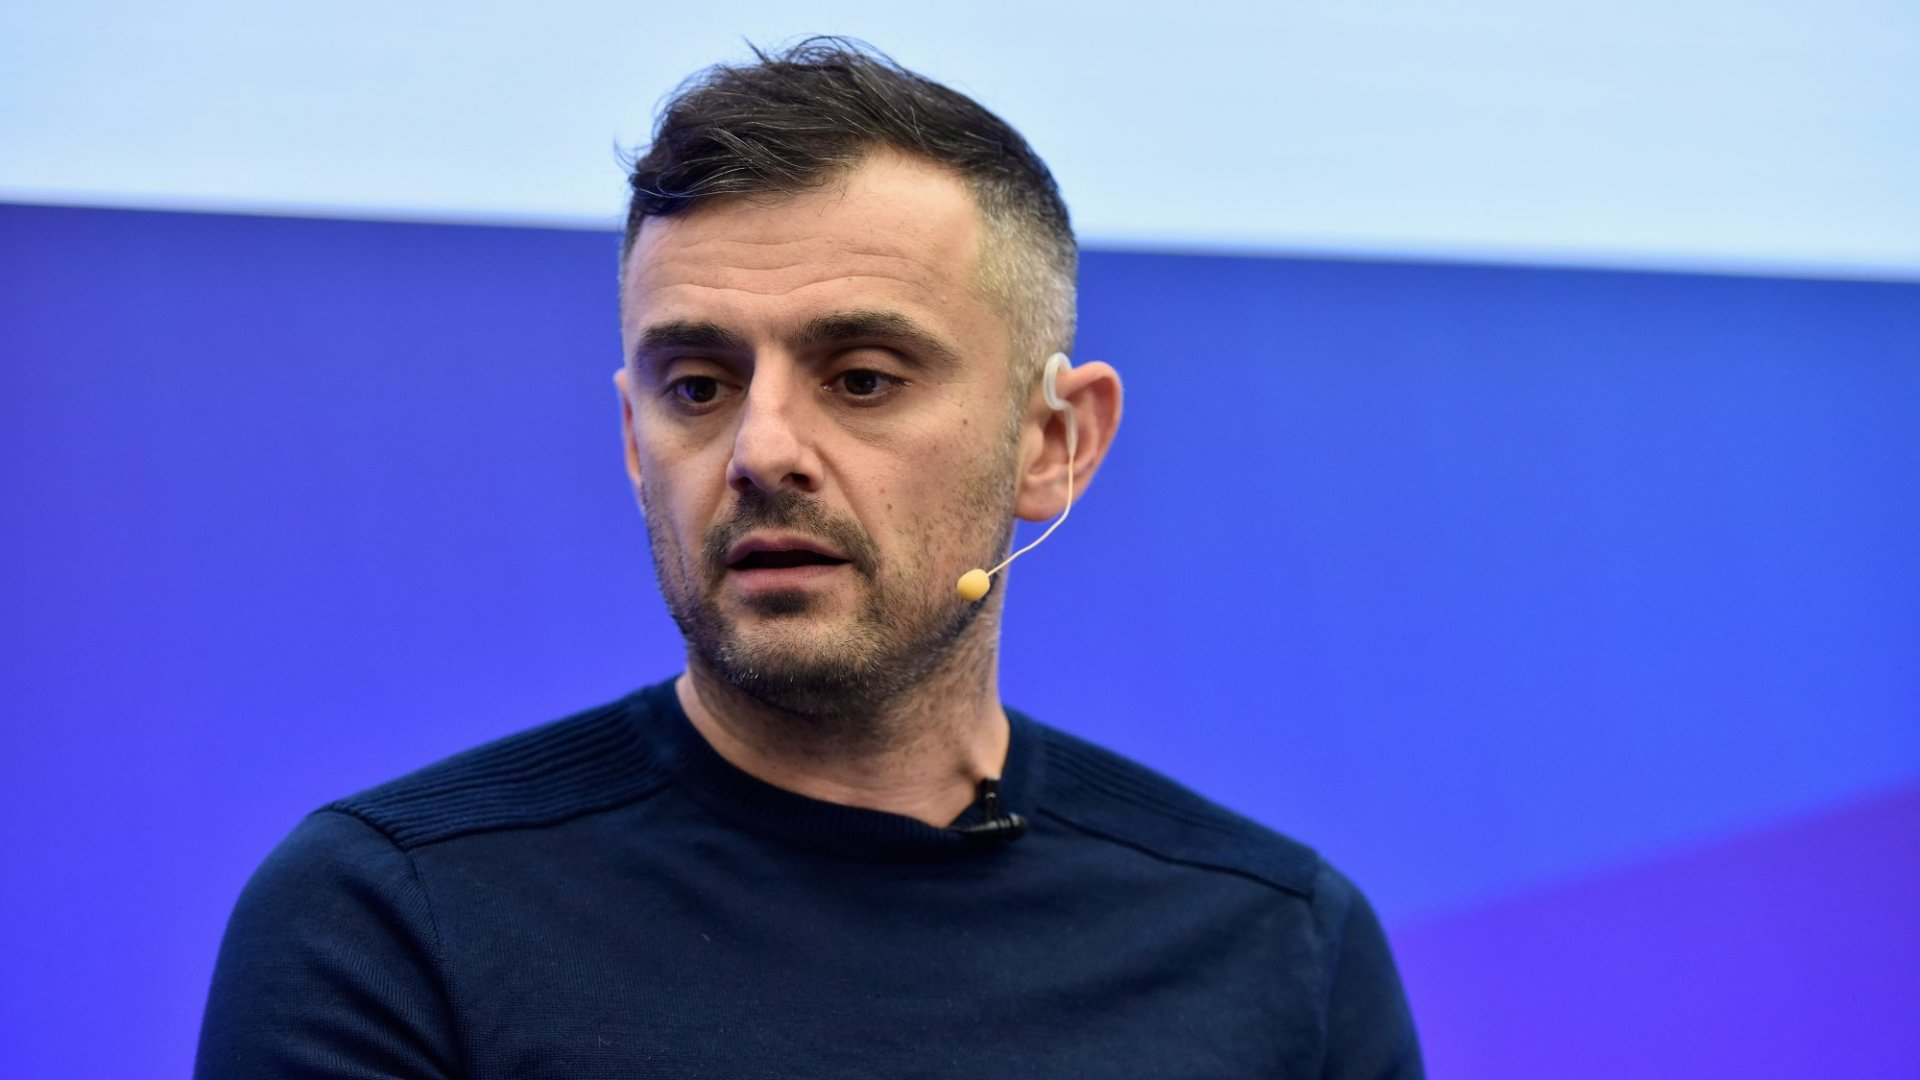 Serial Entrepreneur Gary Vaynerchuk Just Landed a Sneaker Deal. Here's Why That Matters